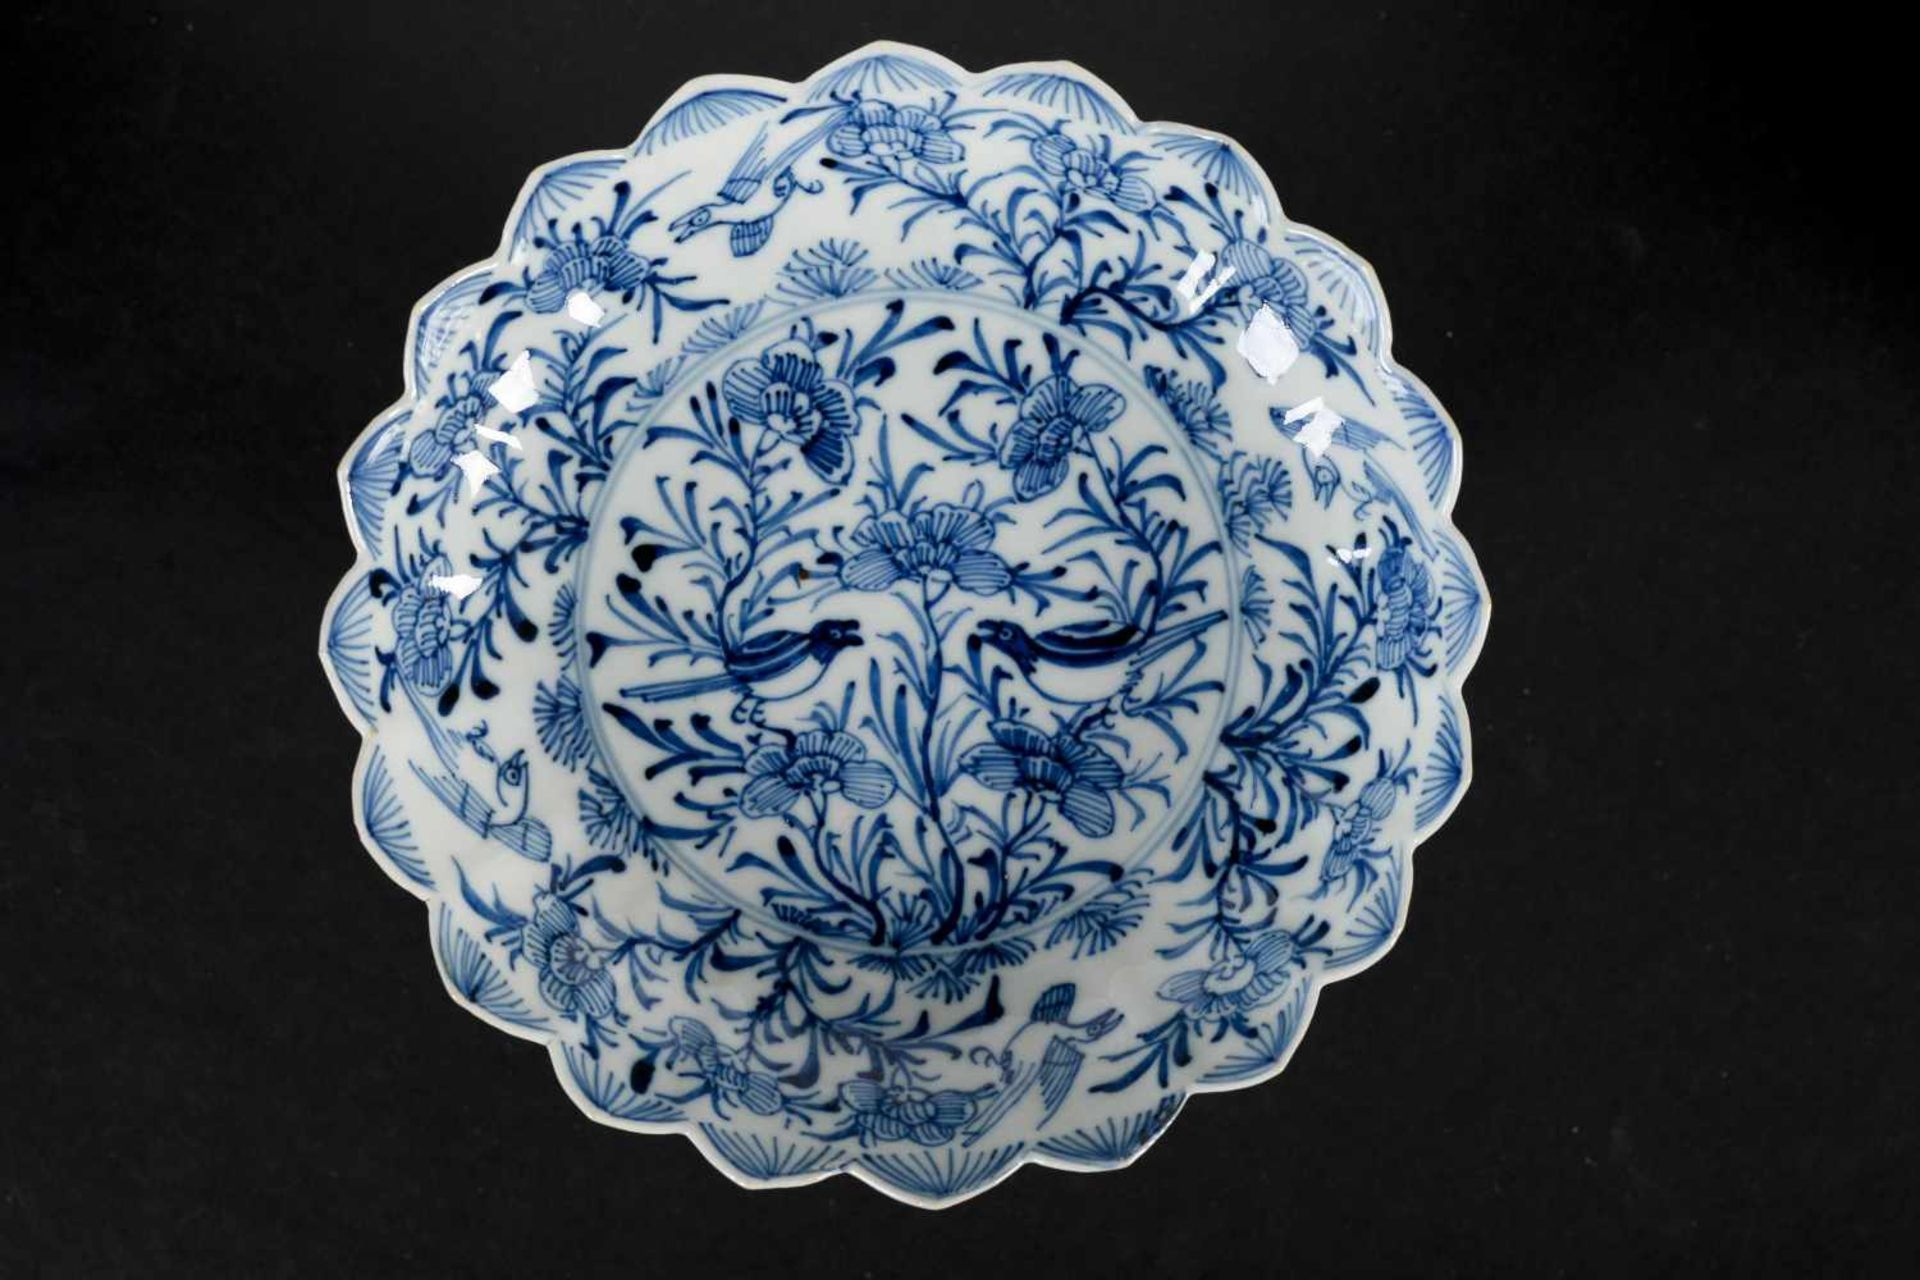 A set of six blue and white porcelain deep saucers with scalloped rim, decorated with flowers and - Bild 6 aus 8